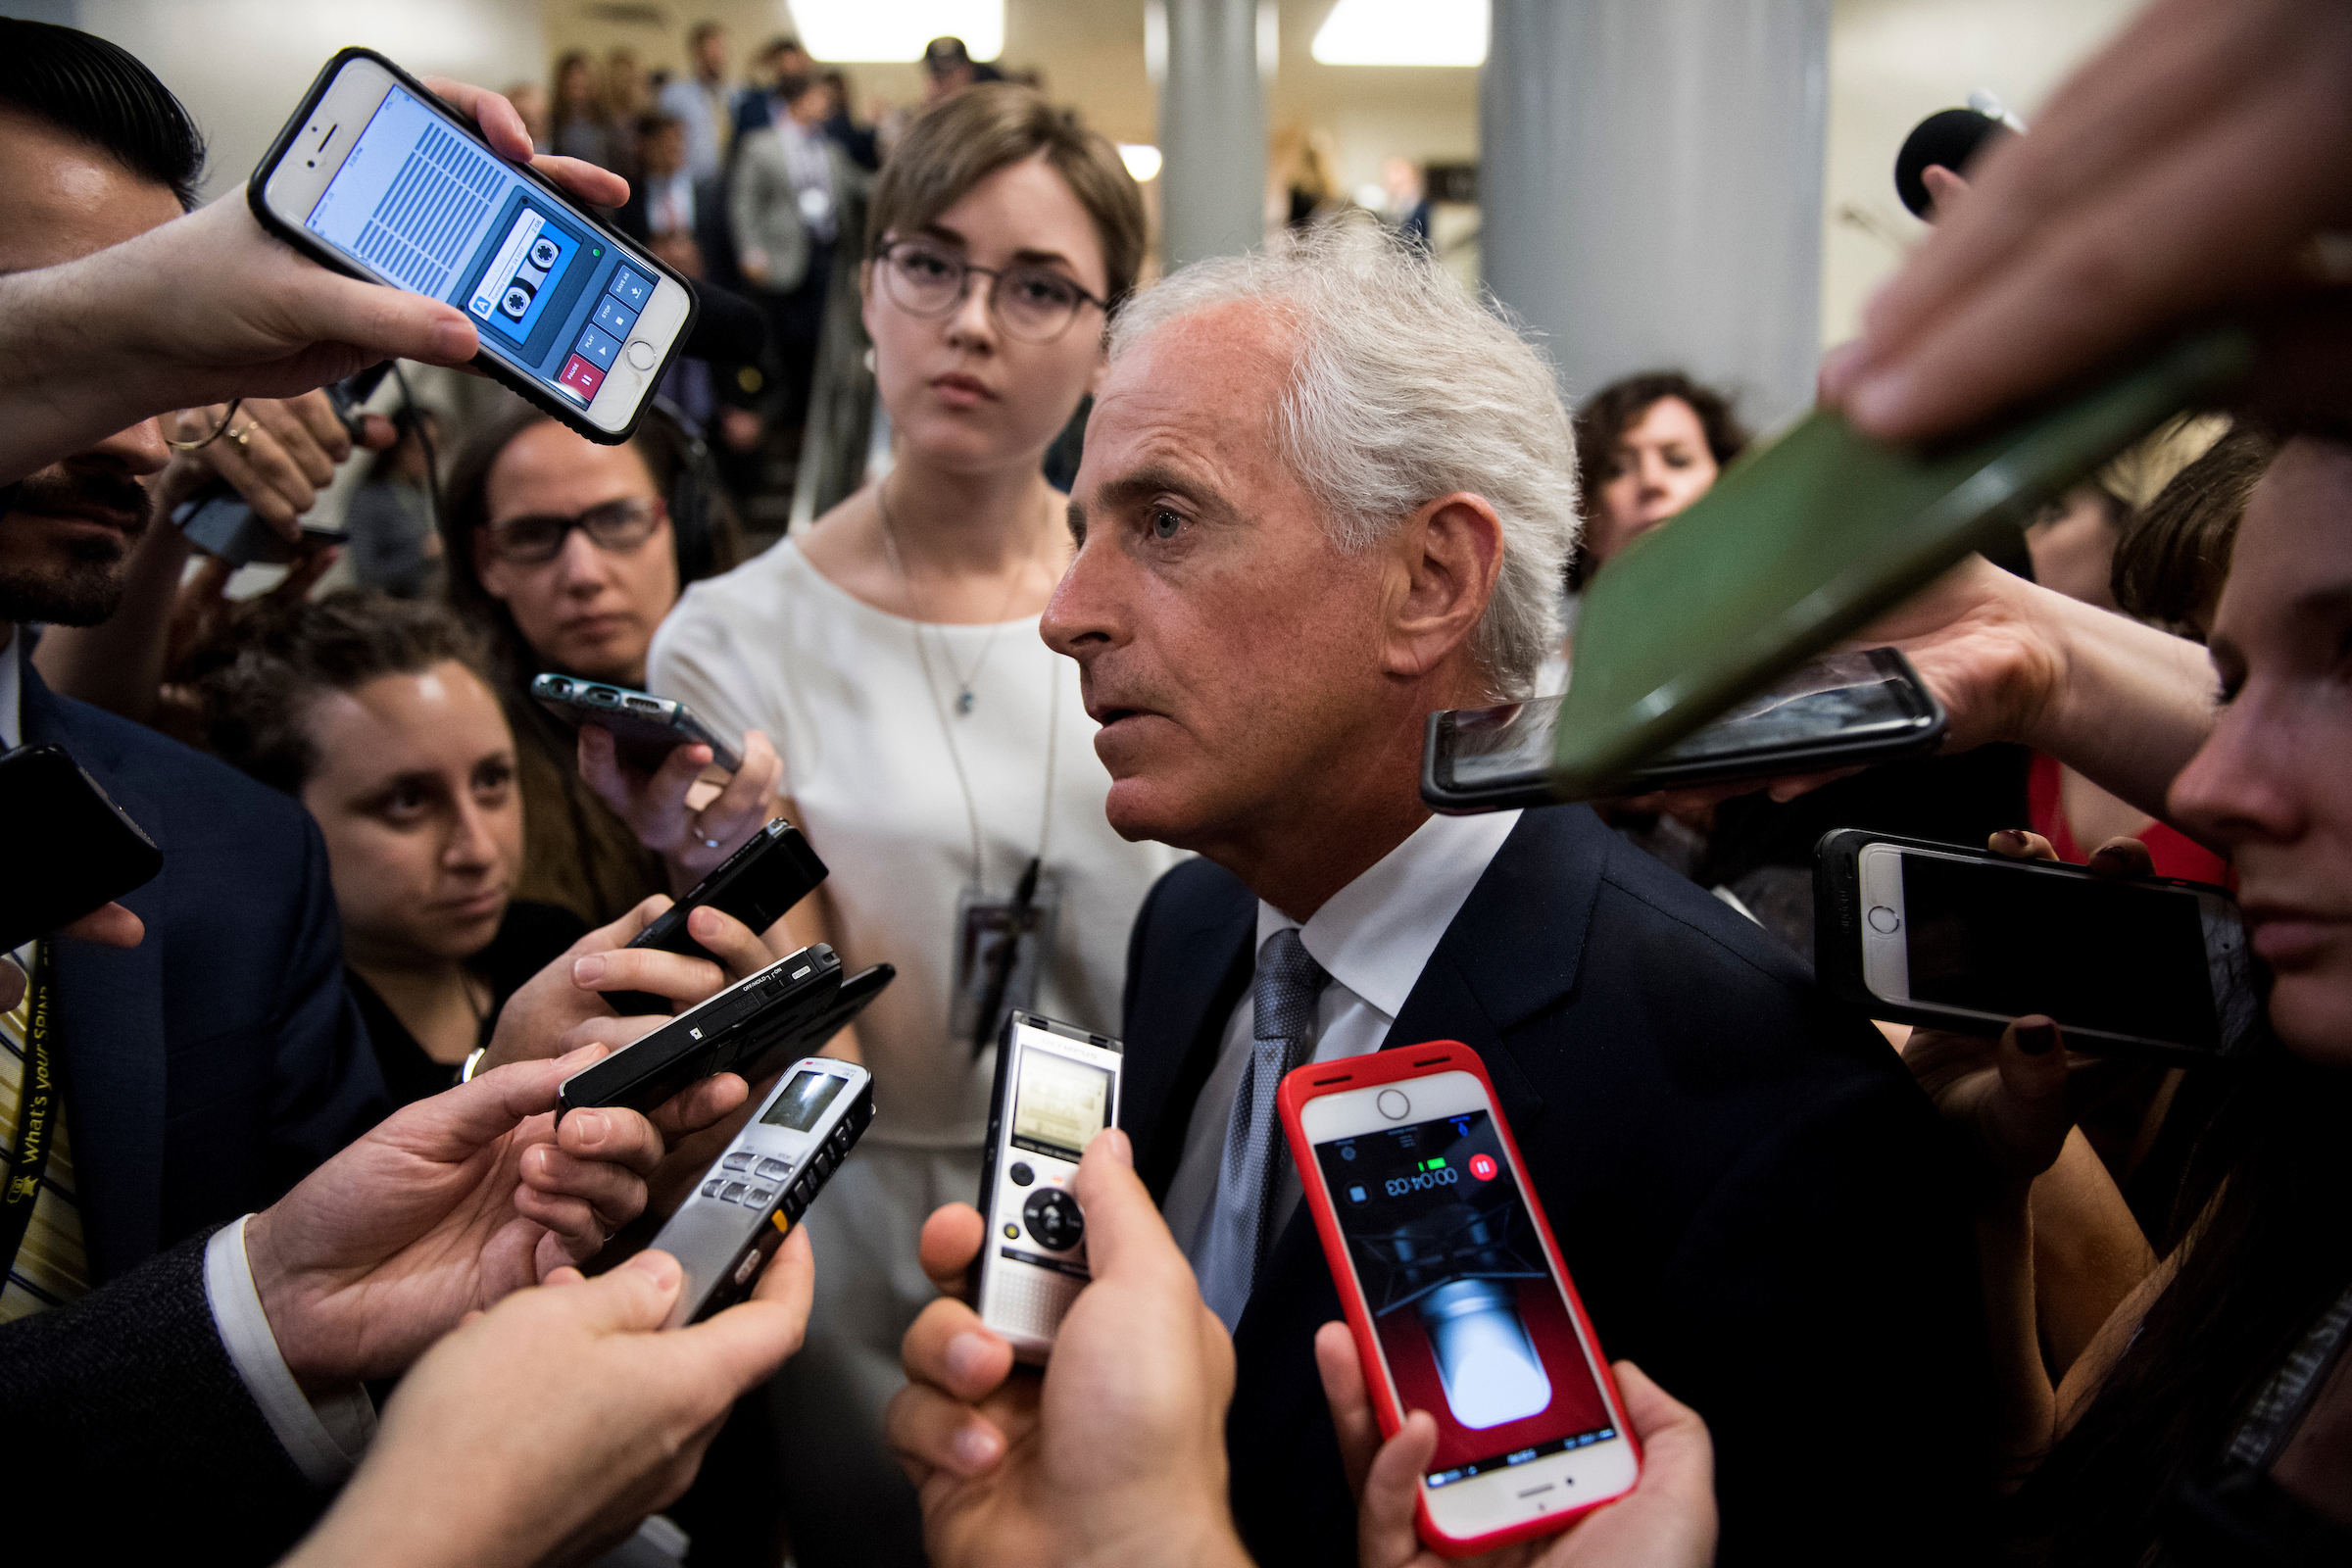 UNITED STATES - OCTOBER 24: Sen. Bob Corker, R-Tenn., speaks to reporters as he leaves the Senate Republicans' policy lunch with President Donald Trump in the Capitol on Tuesday, Oct. 24, 2017. (Photo By Bill Clark/CQ Roll Call)